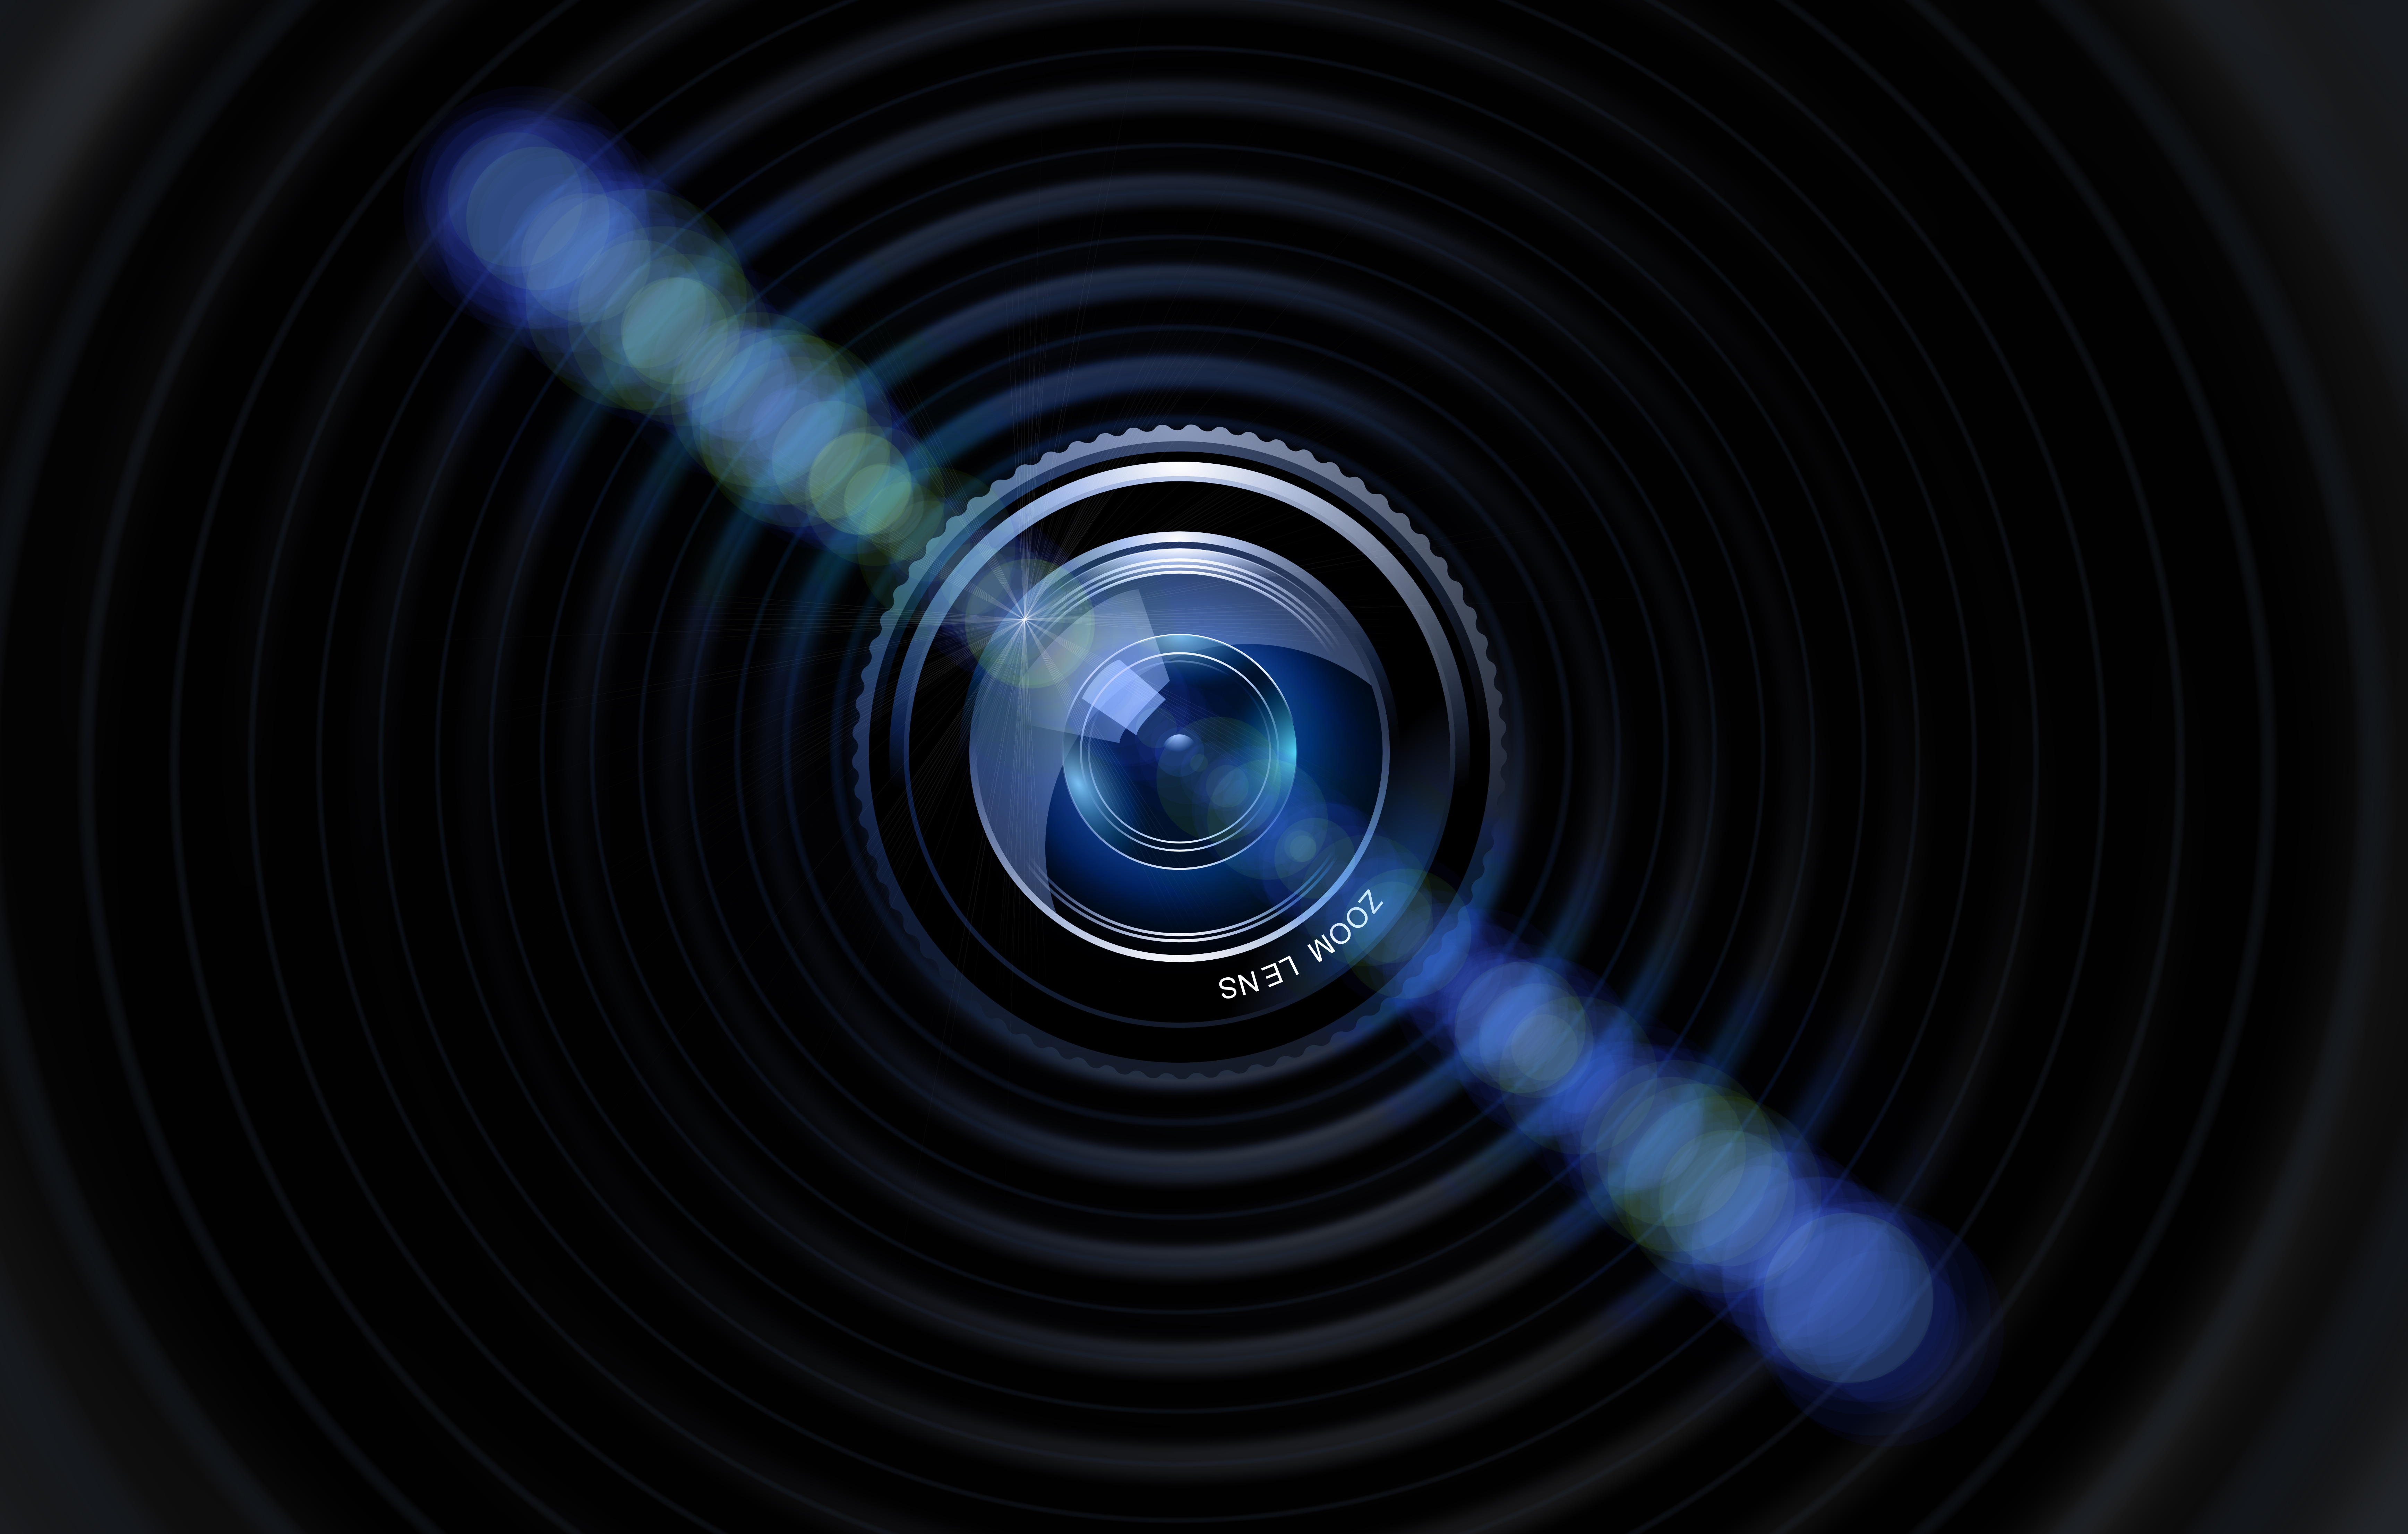 79736 download wallpaper Dark, Glare, Lens, Bokeh, Boquet, Camera screensavers and pictures for free